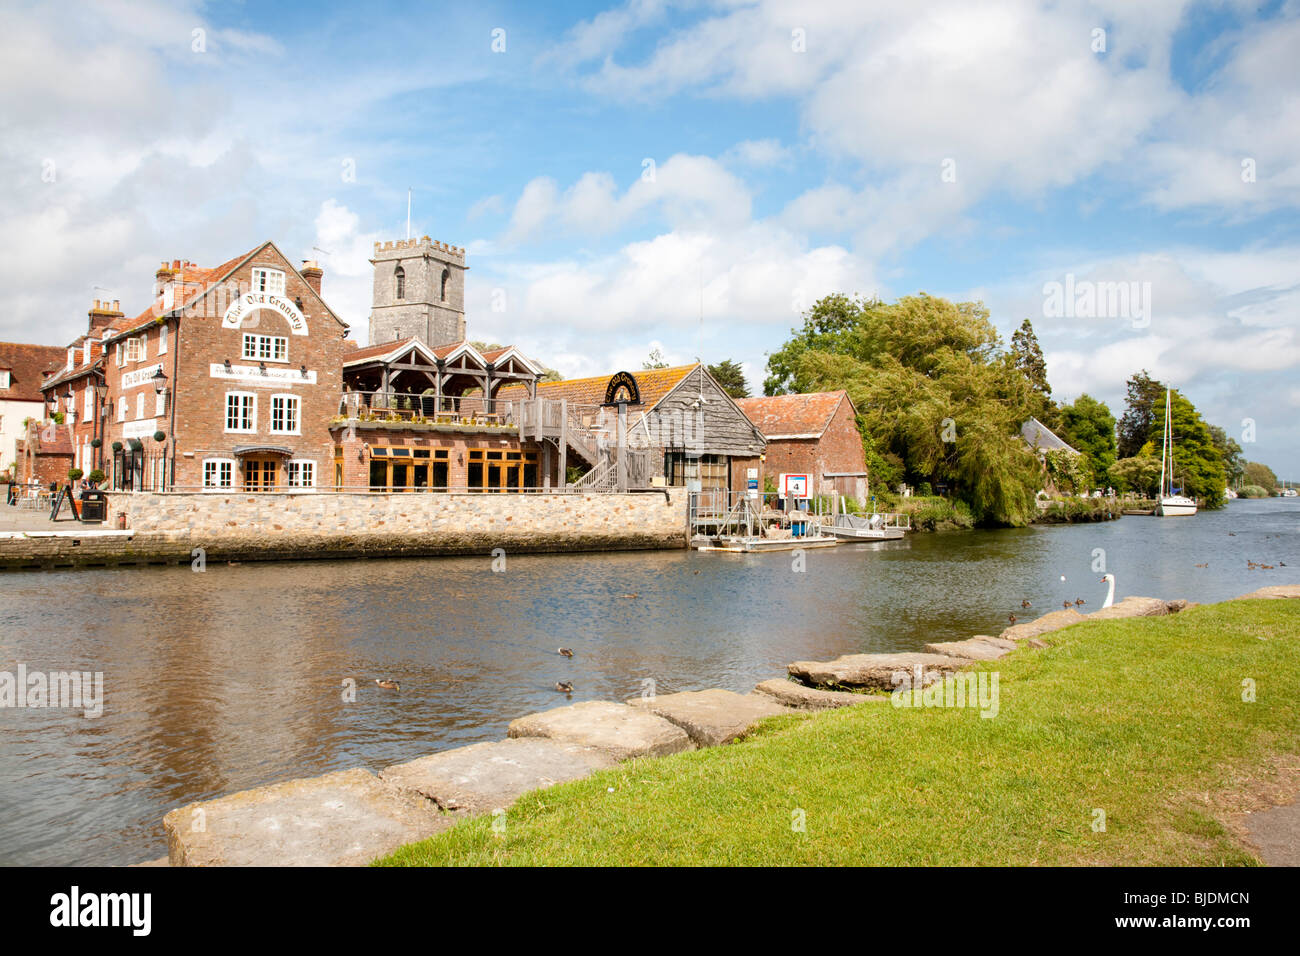 The River Frome and Old Granary at Wareham, Dorset England UK - Stock Image